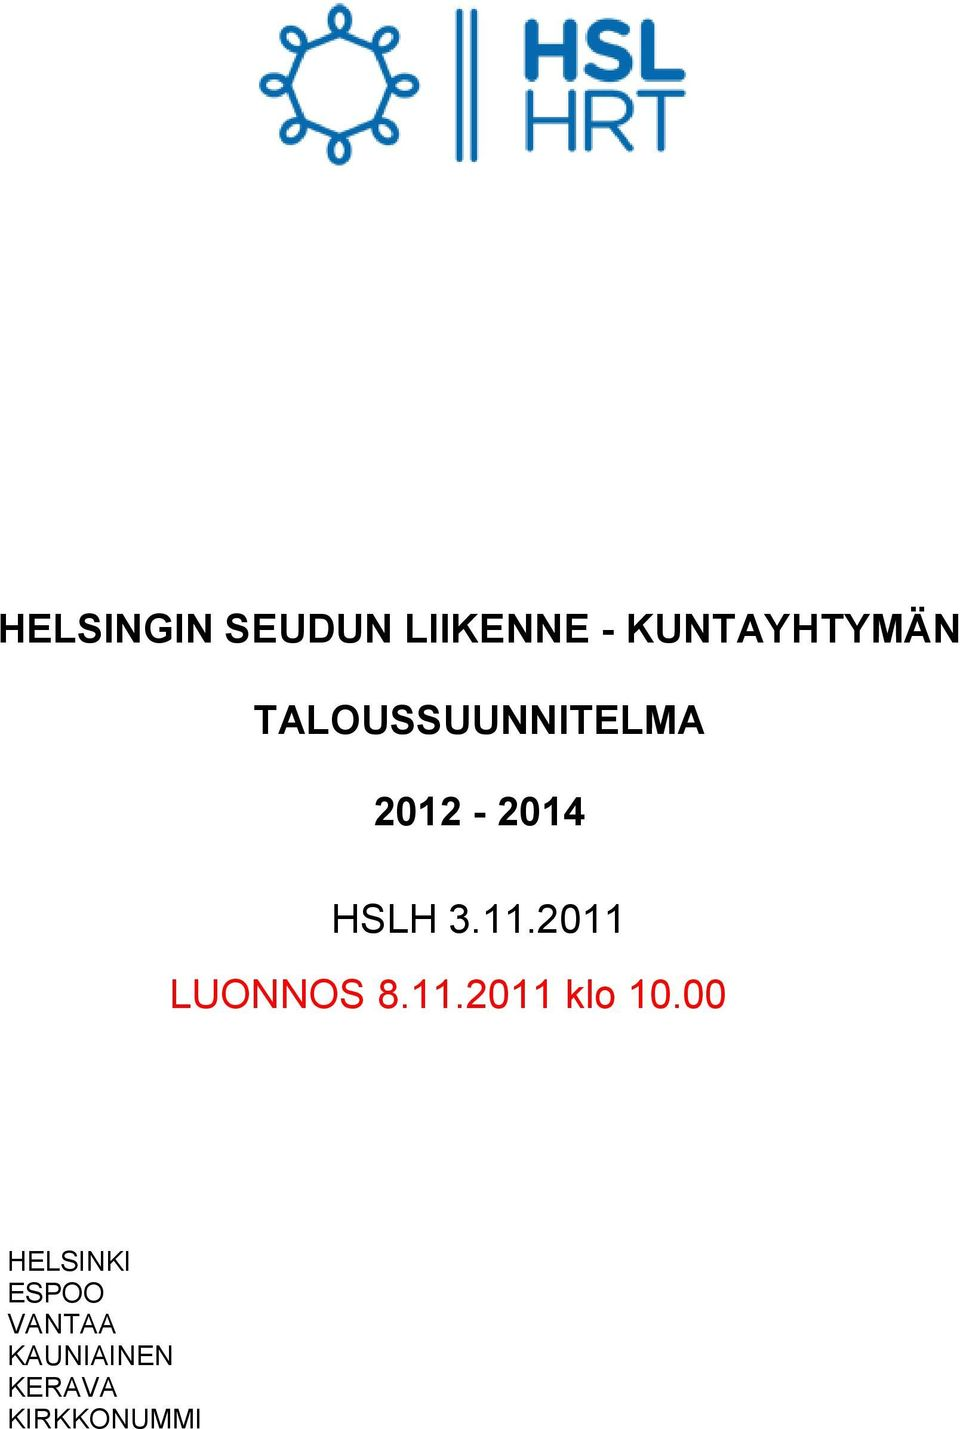 2011 LUONNOS 8.11.2011 klo 10.